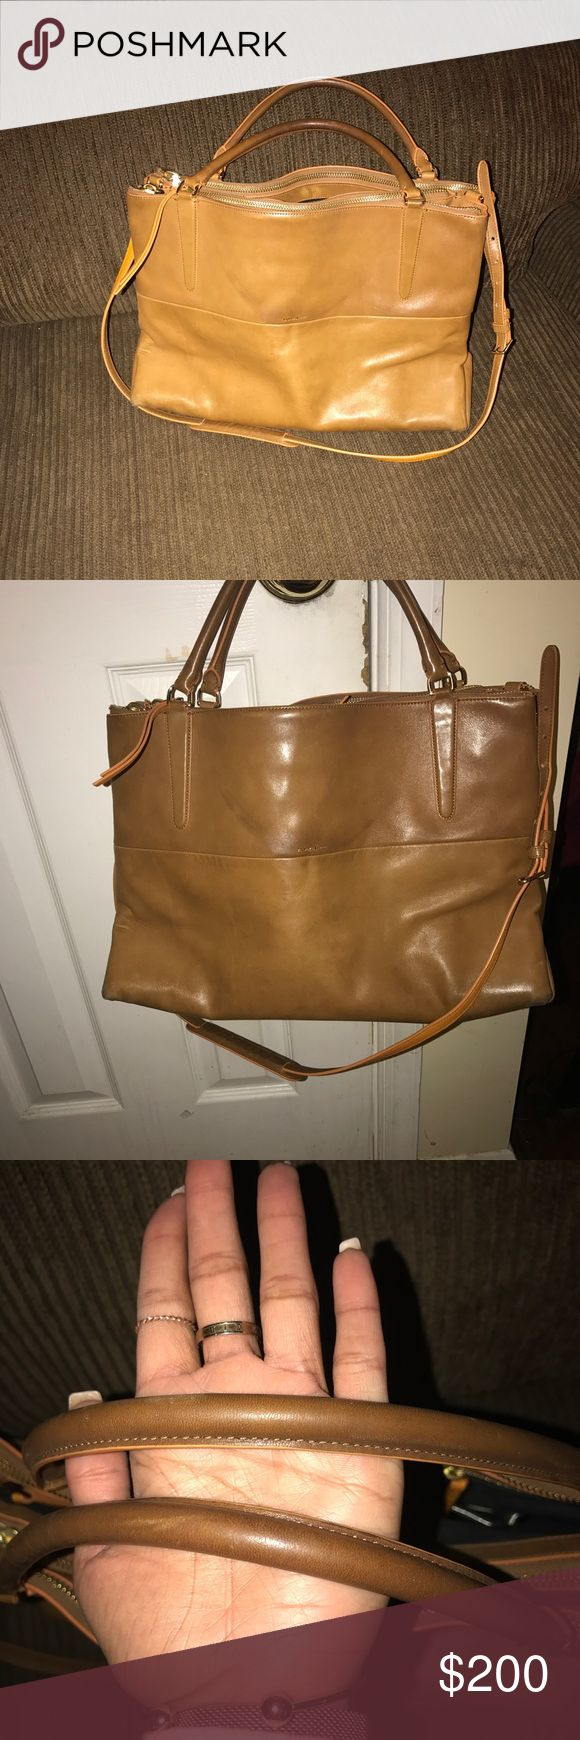 AUTHENTIC COACH BOROUGH BAG ❤️ Large bag! Napa Leather. Discontinued style. Almost 4 years old. Very good condition. Some spots inside but can be easily cleaned. Has 2 open spaces and 3 zip compartments shown below. Beautifully aged leather and tangerine piping. ❤️ Can be used for work, everyday, or travel. PRICE NEGOTIABLE LOOKING TO SELL TODAY! Coach Bags Satchels